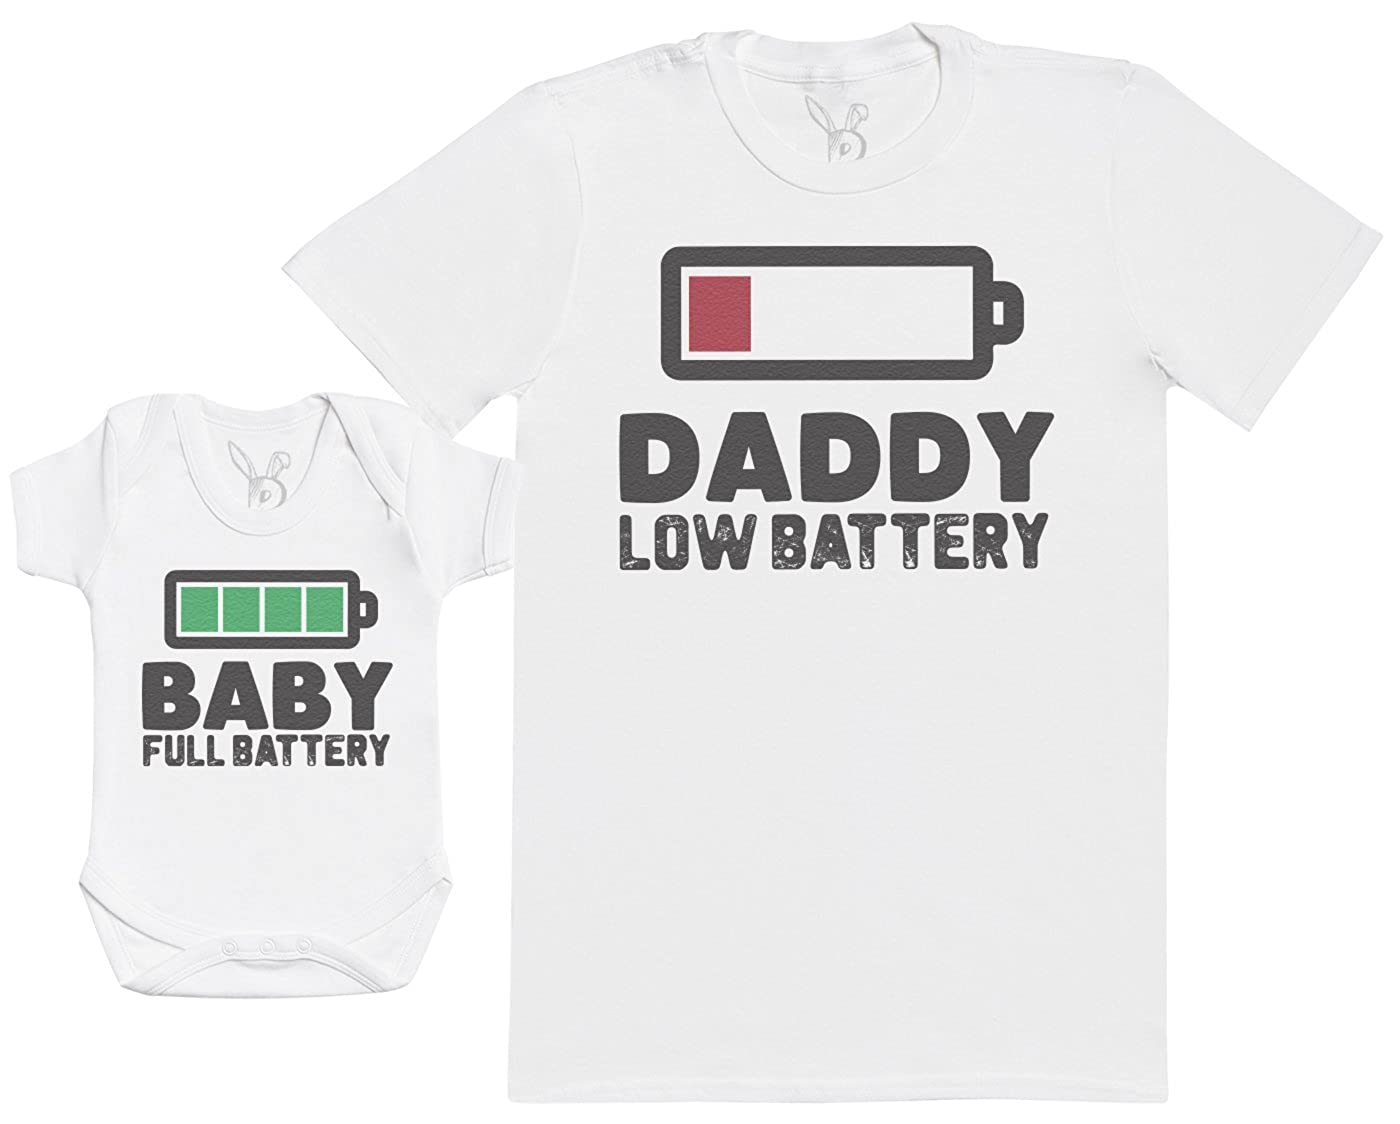 Hommes T-Shirt /& Body b/éb/é Baby Full Battery Ensemble P/ère B/éb/é Cadeau